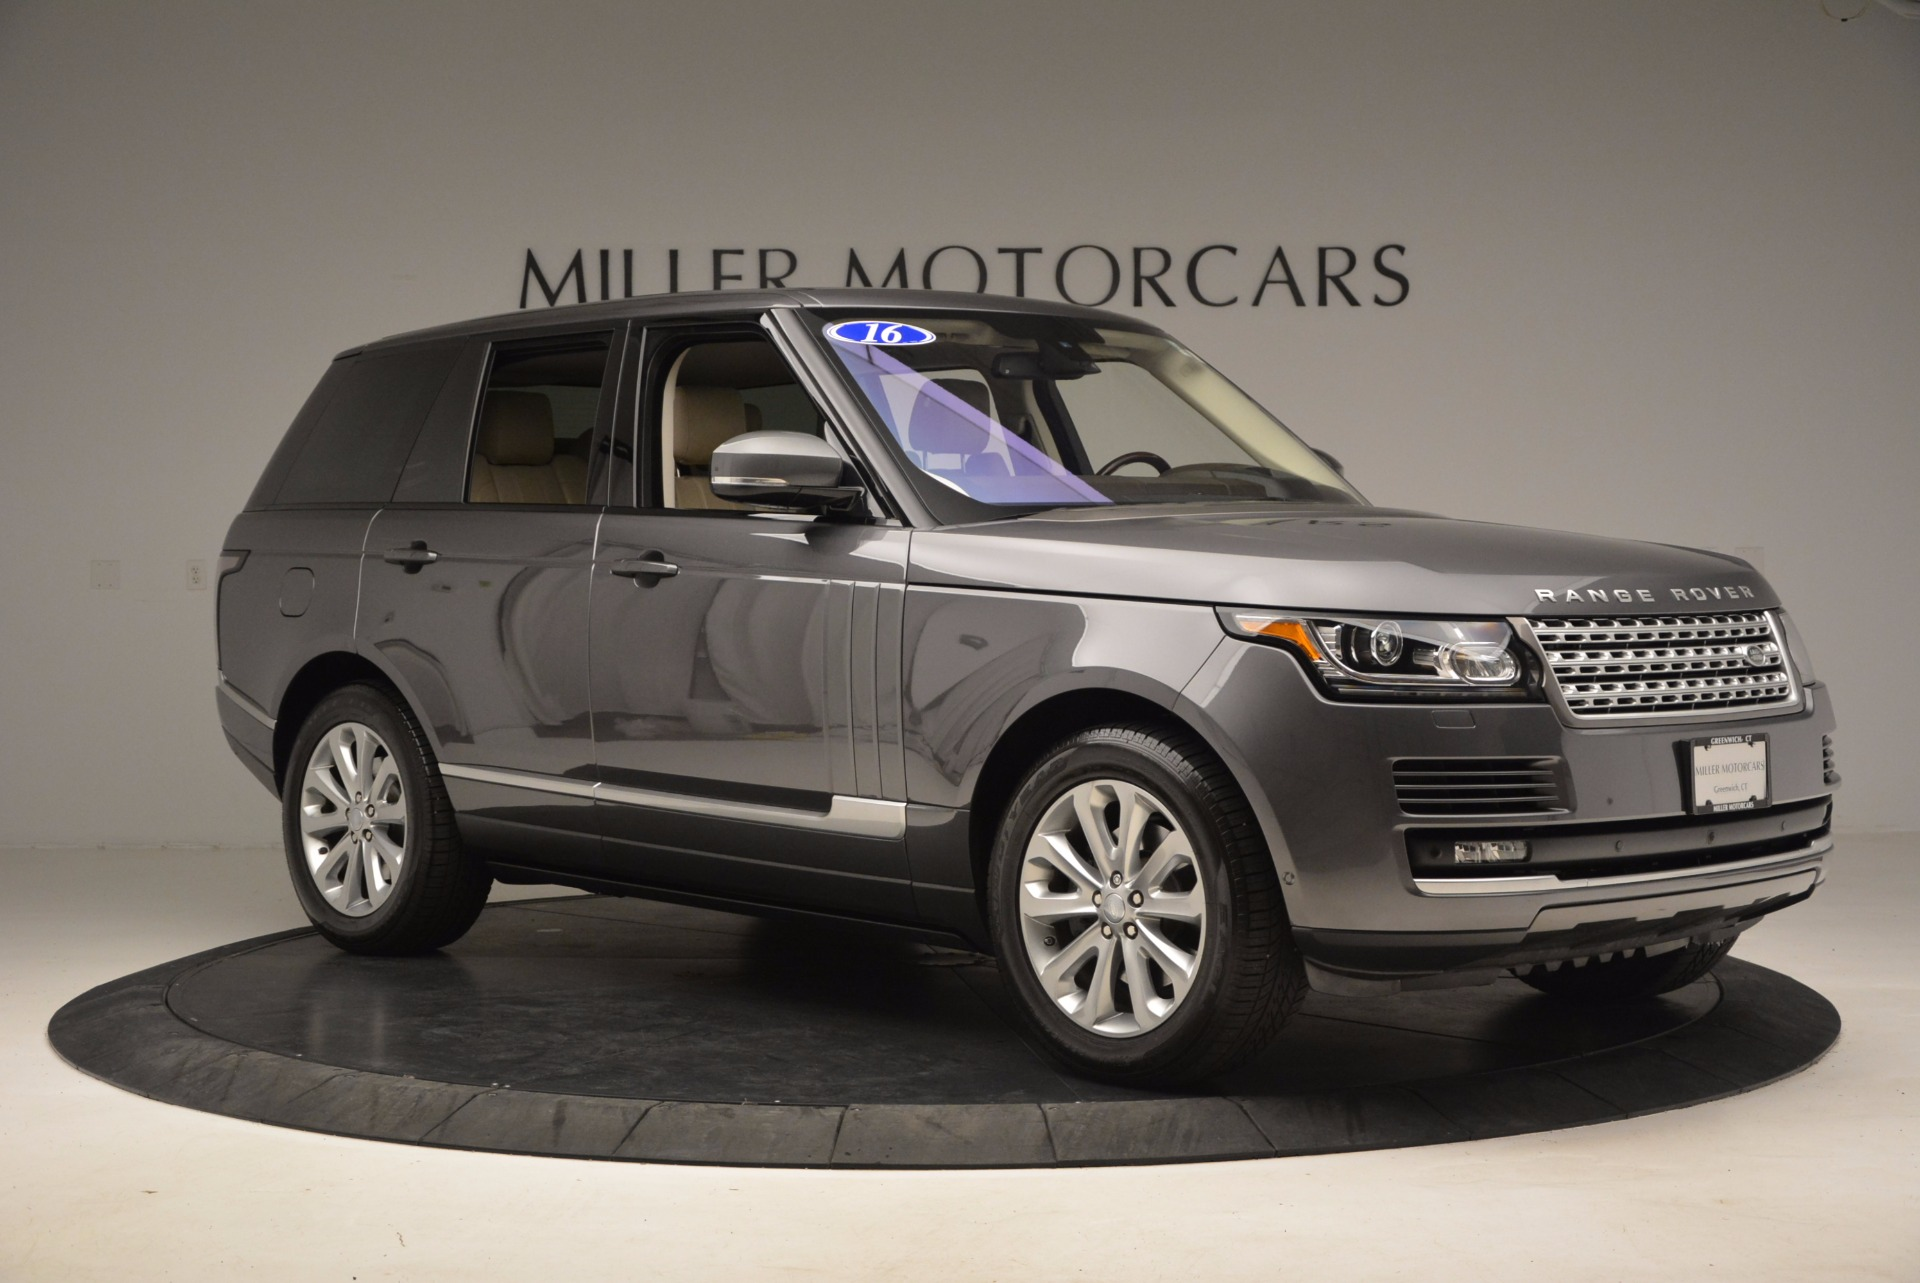 Used 2016 Land Rover Range Rover HSE TD6 For Sale In Greenwich, CT. Alfa Romeo of Greenwich, 7166 999_p10